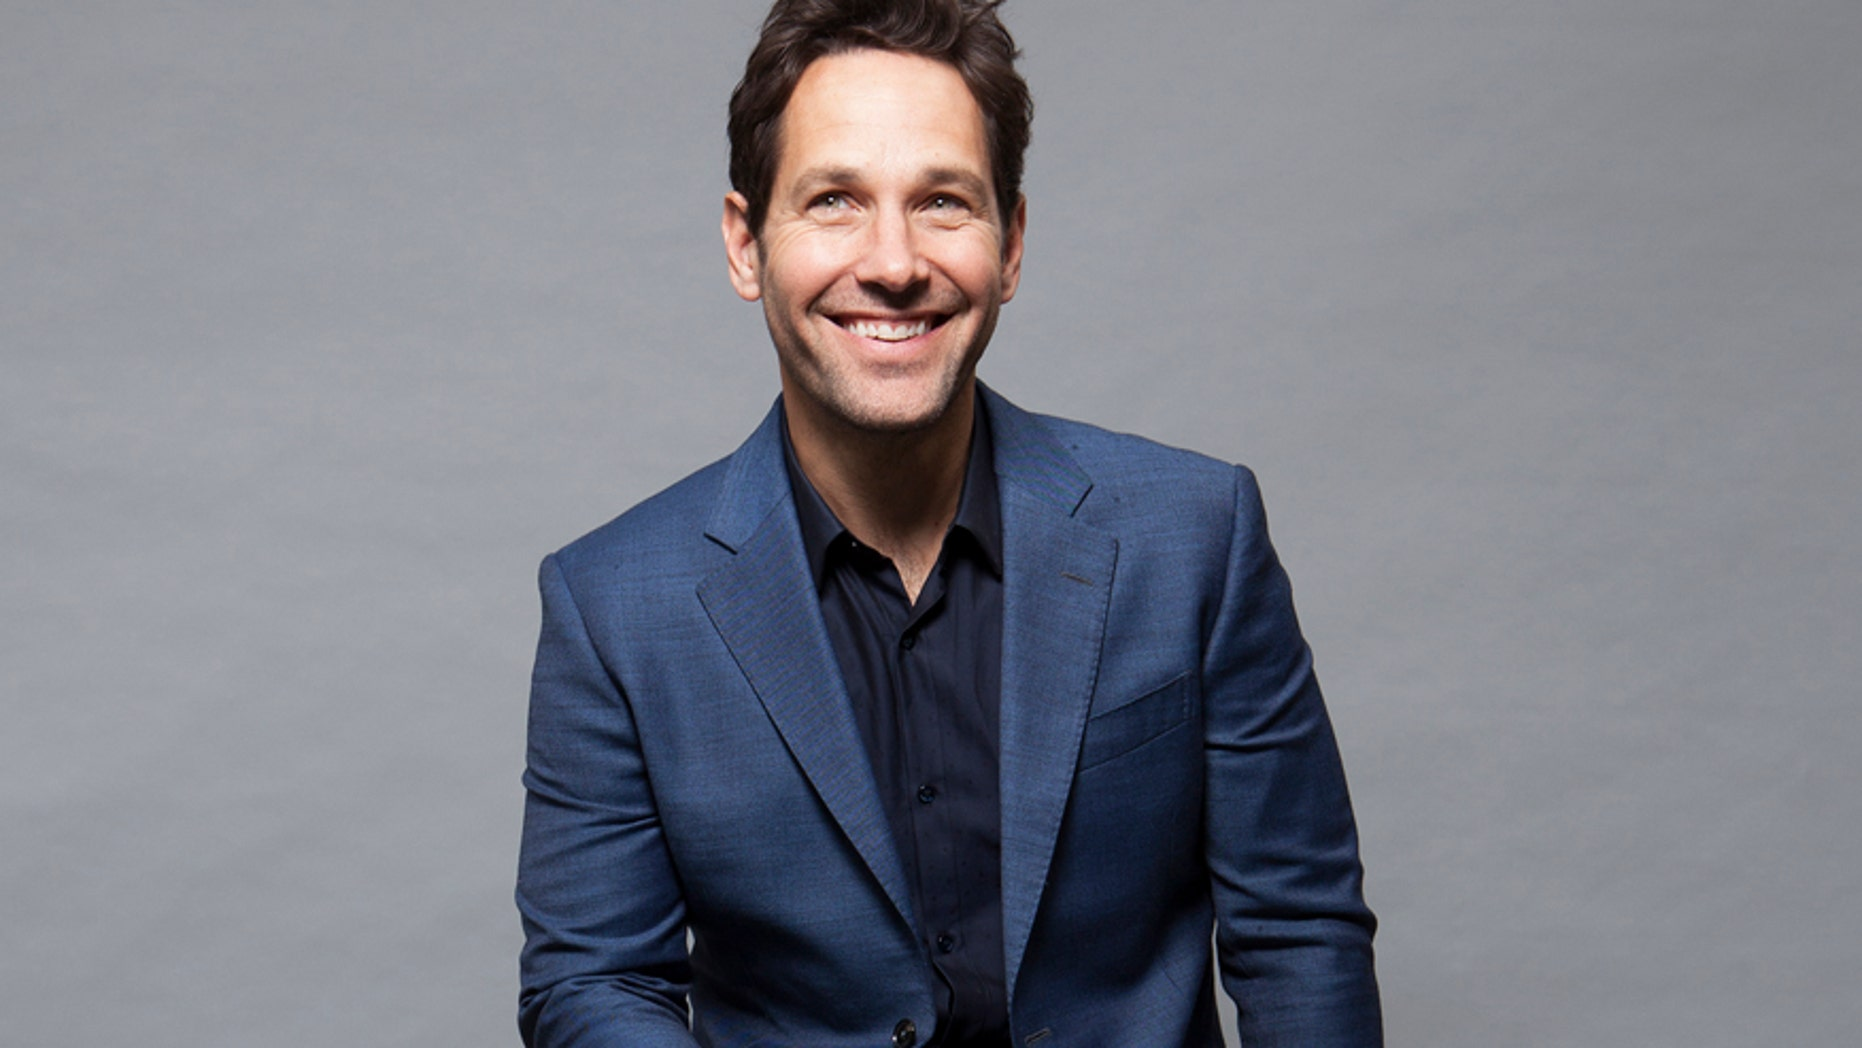 """In this Saturday, June 27, 2015 photo, actor Paul Rudd poses for a portrait in promotion of the new film, """"Ant-Man"""" in Burbank, Calif. The movie releases in the U.S. on July 17, 2015. (Photo by Rebecca Cabage/Invision/AP)"""